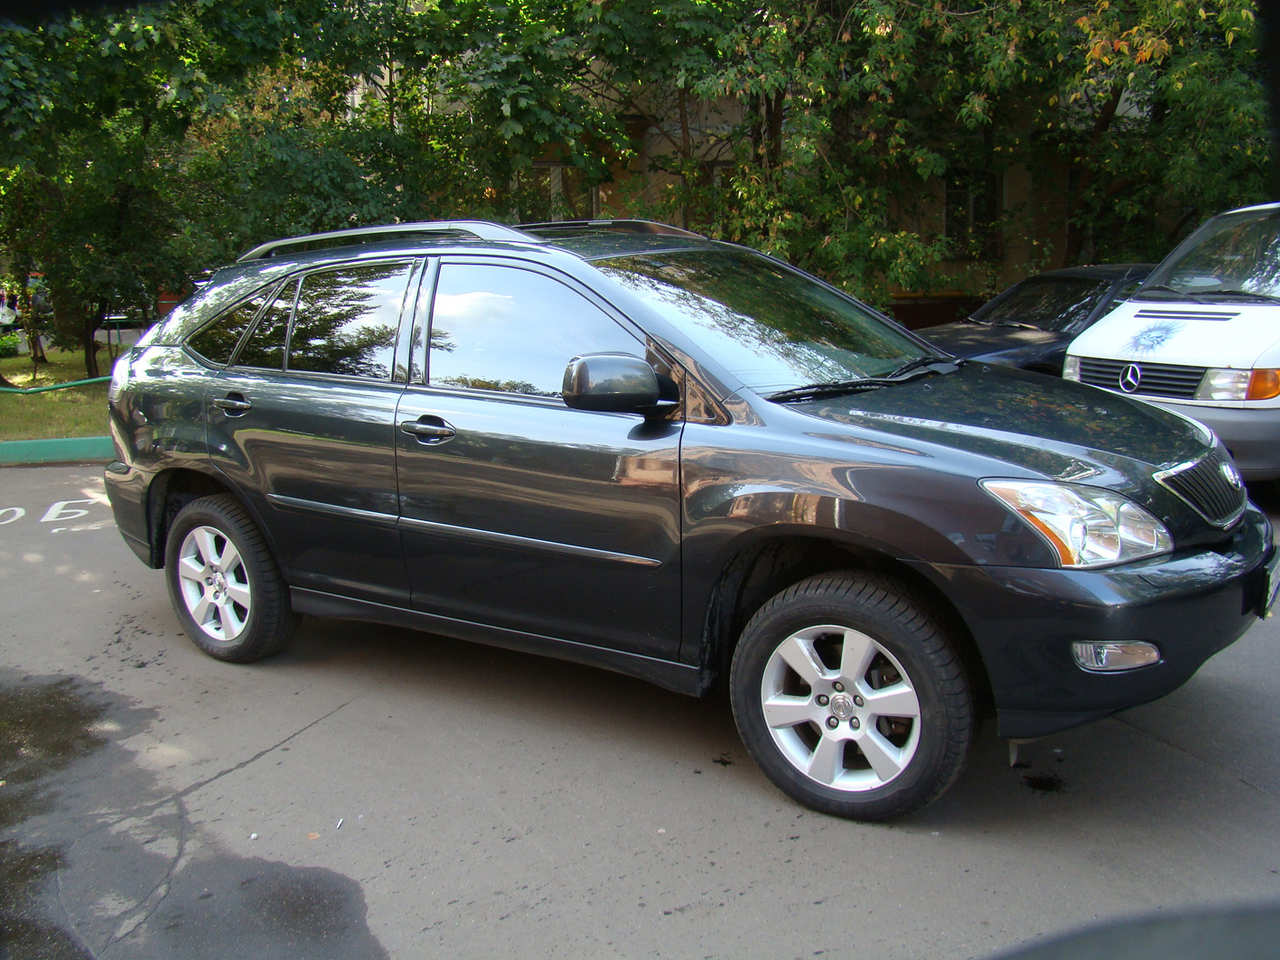 2004 lexus rx330 pictures 3300cc gasoline automatic for sale. Black Bedroom Furniture Sets. Home Design Ideas